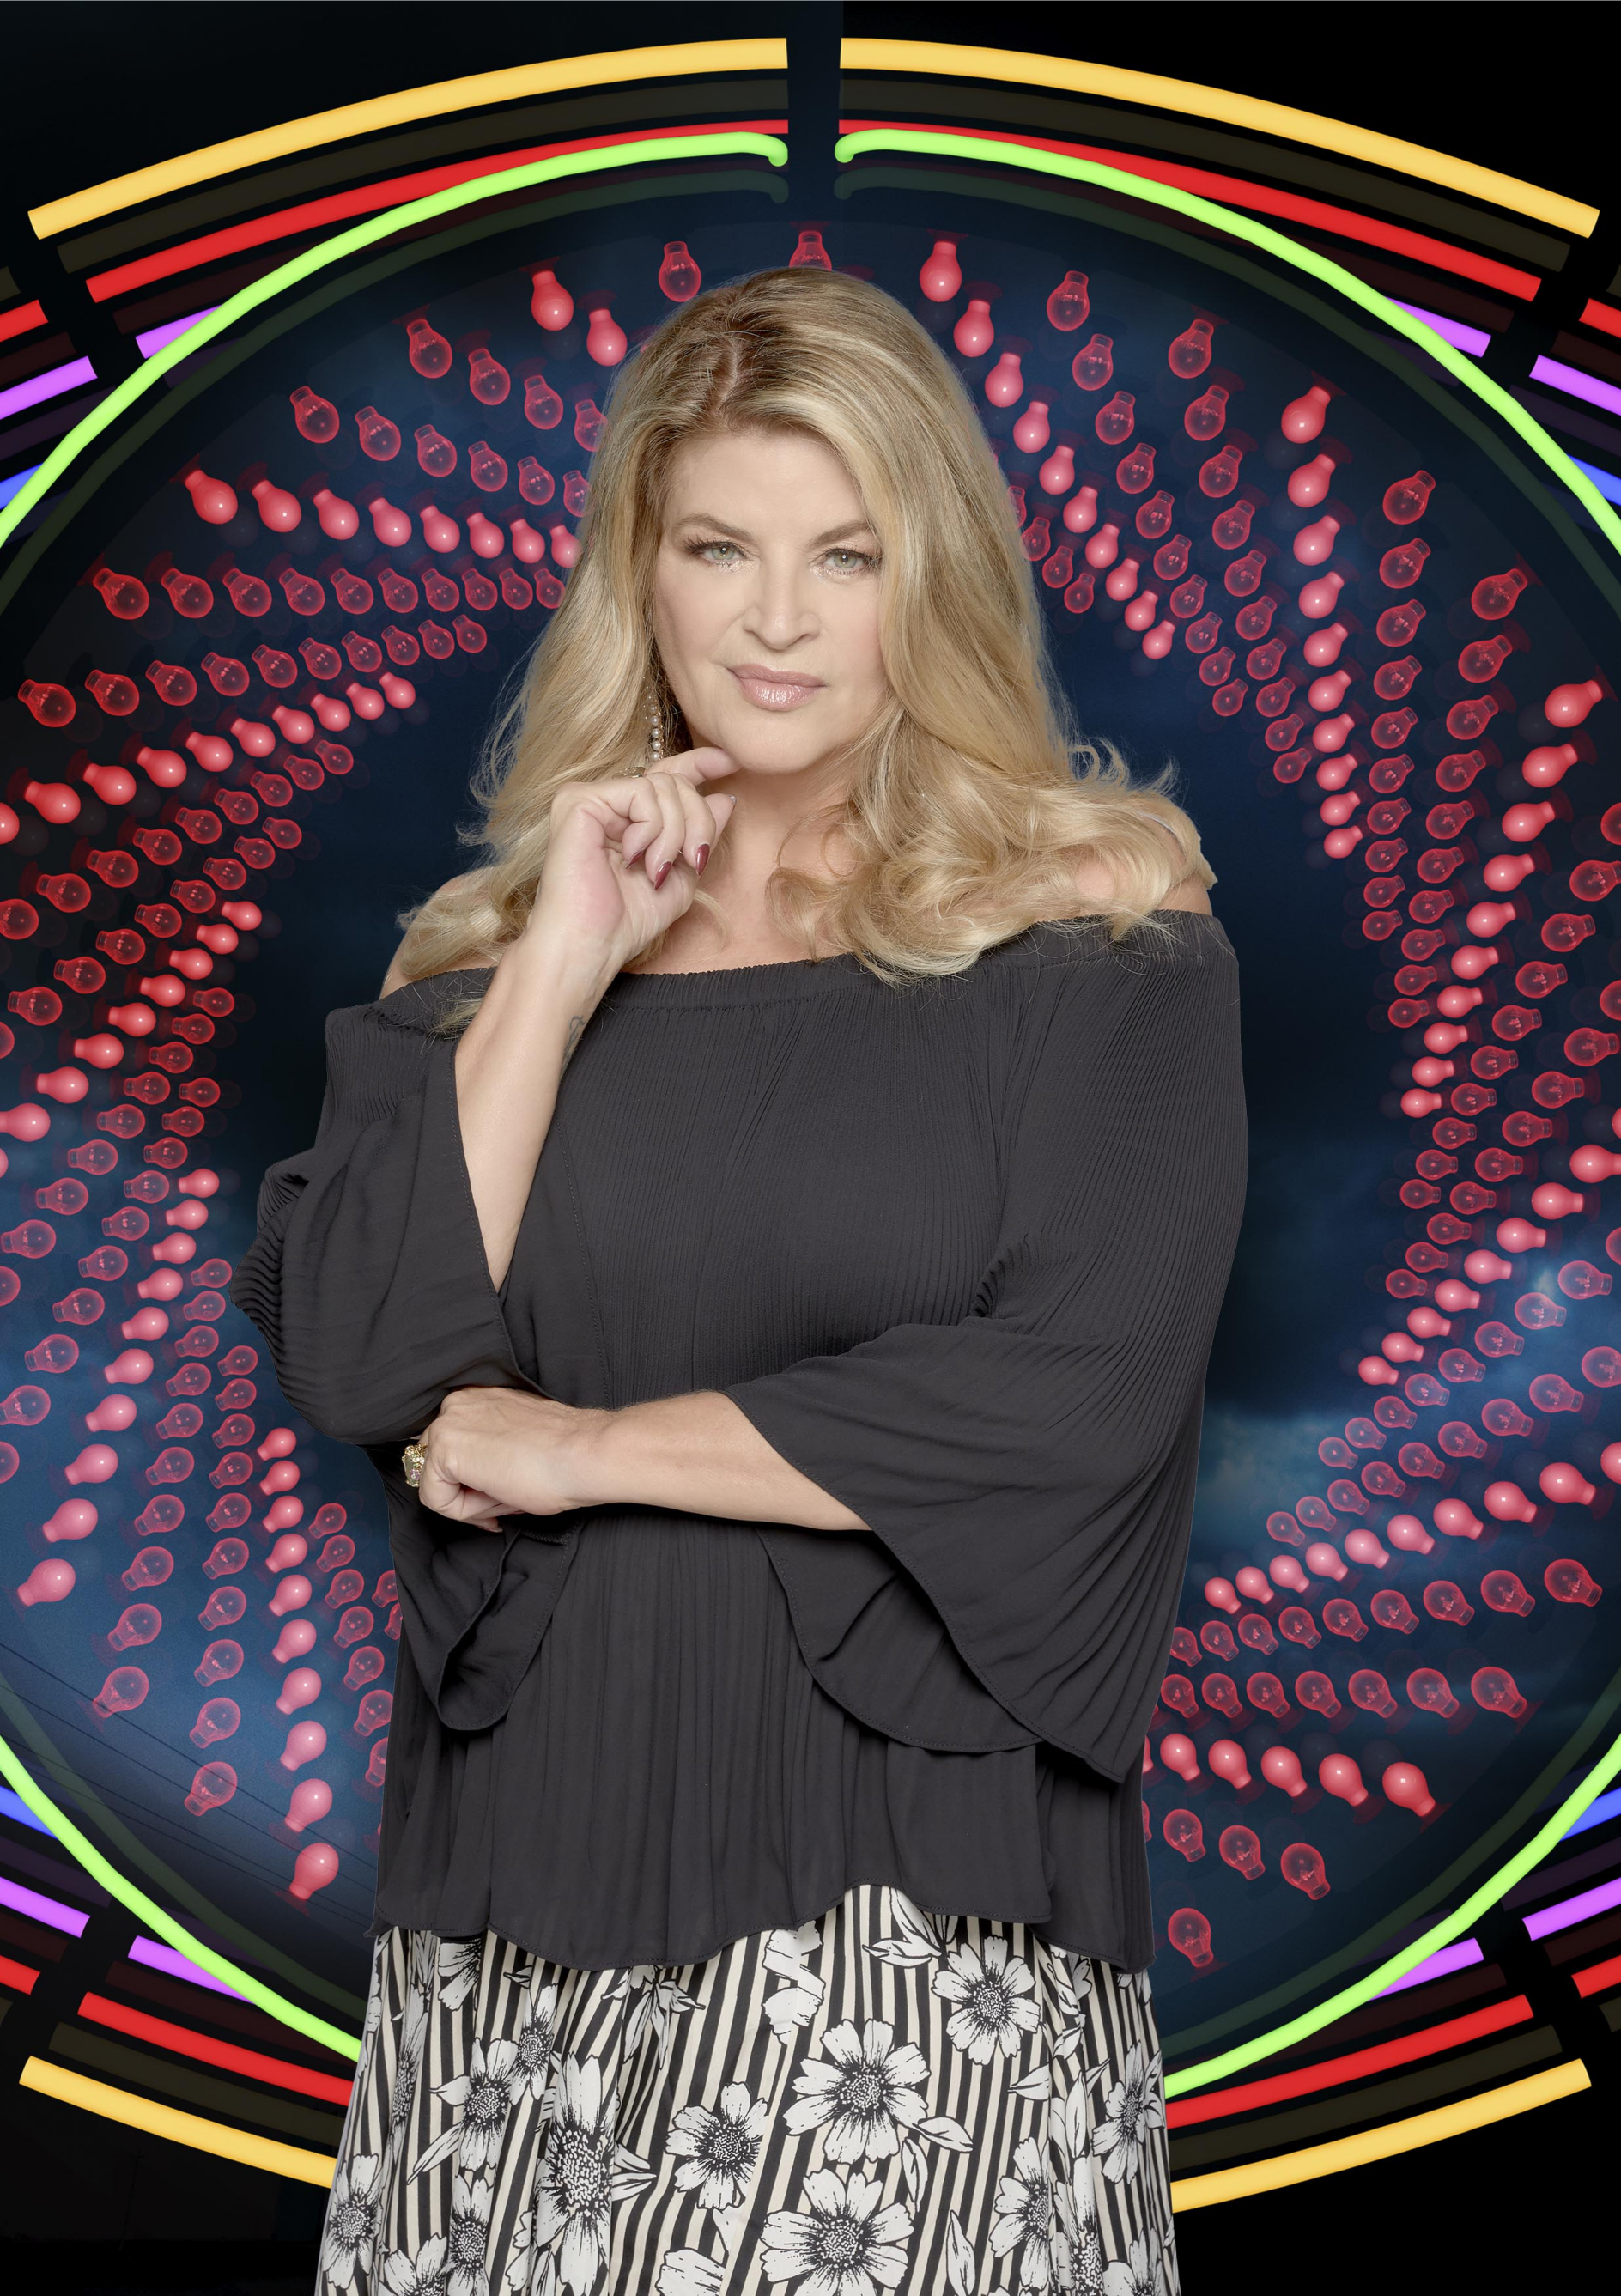 Kirstie Alley born January 12, 1951 (age 67)